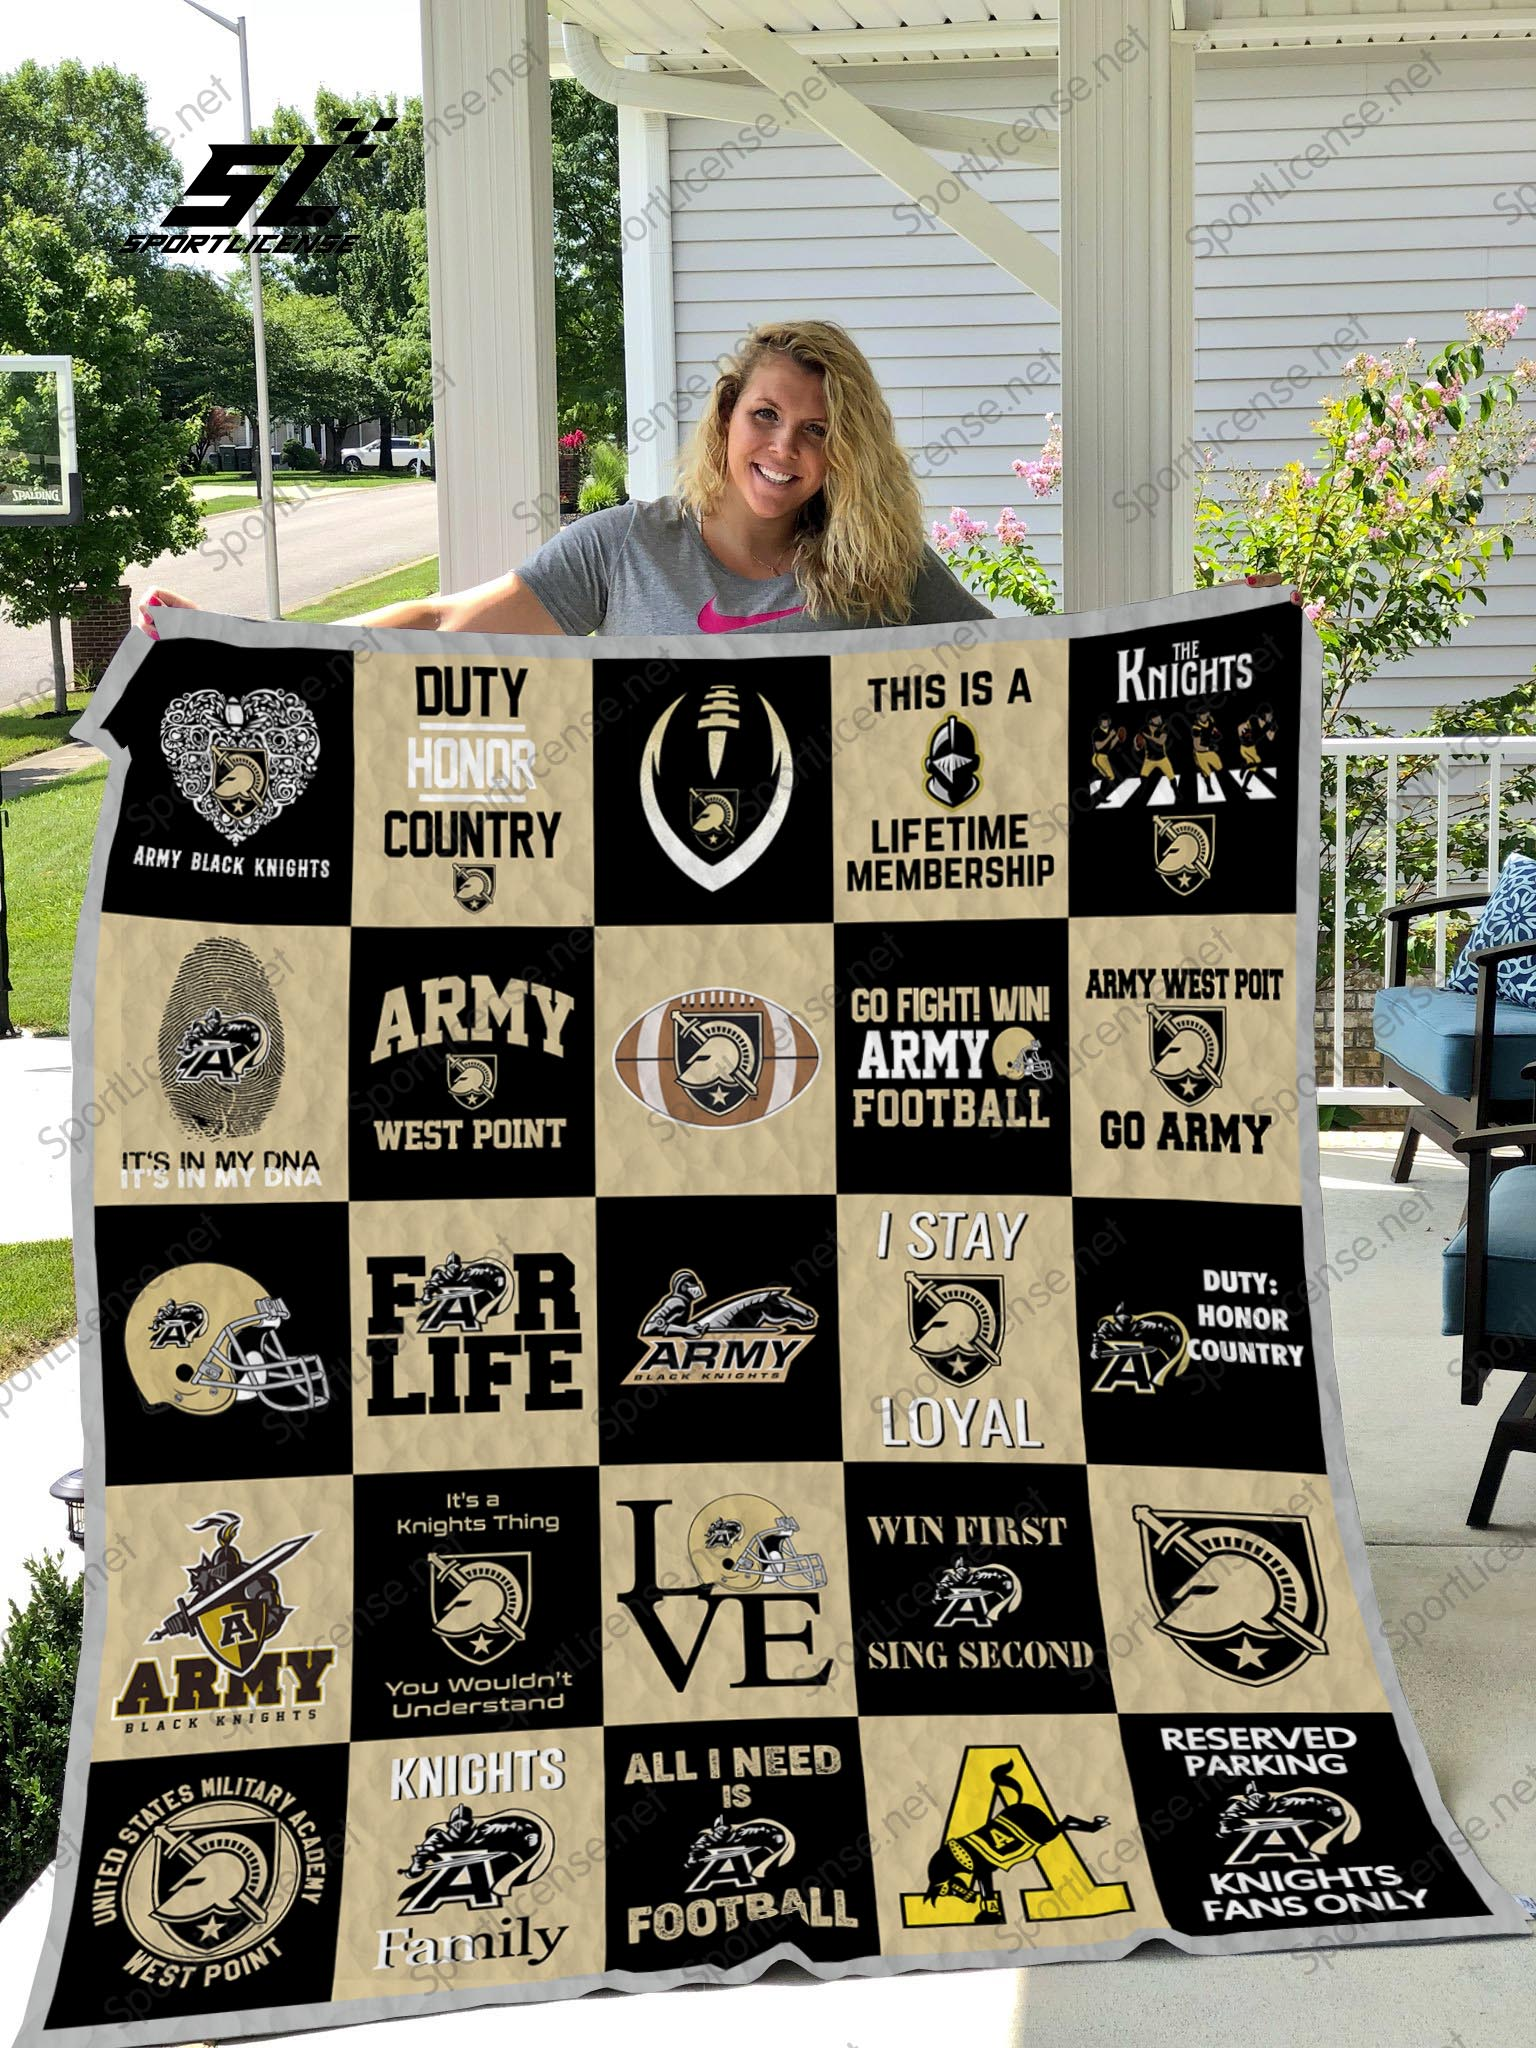 Army west point black knights quilt 1